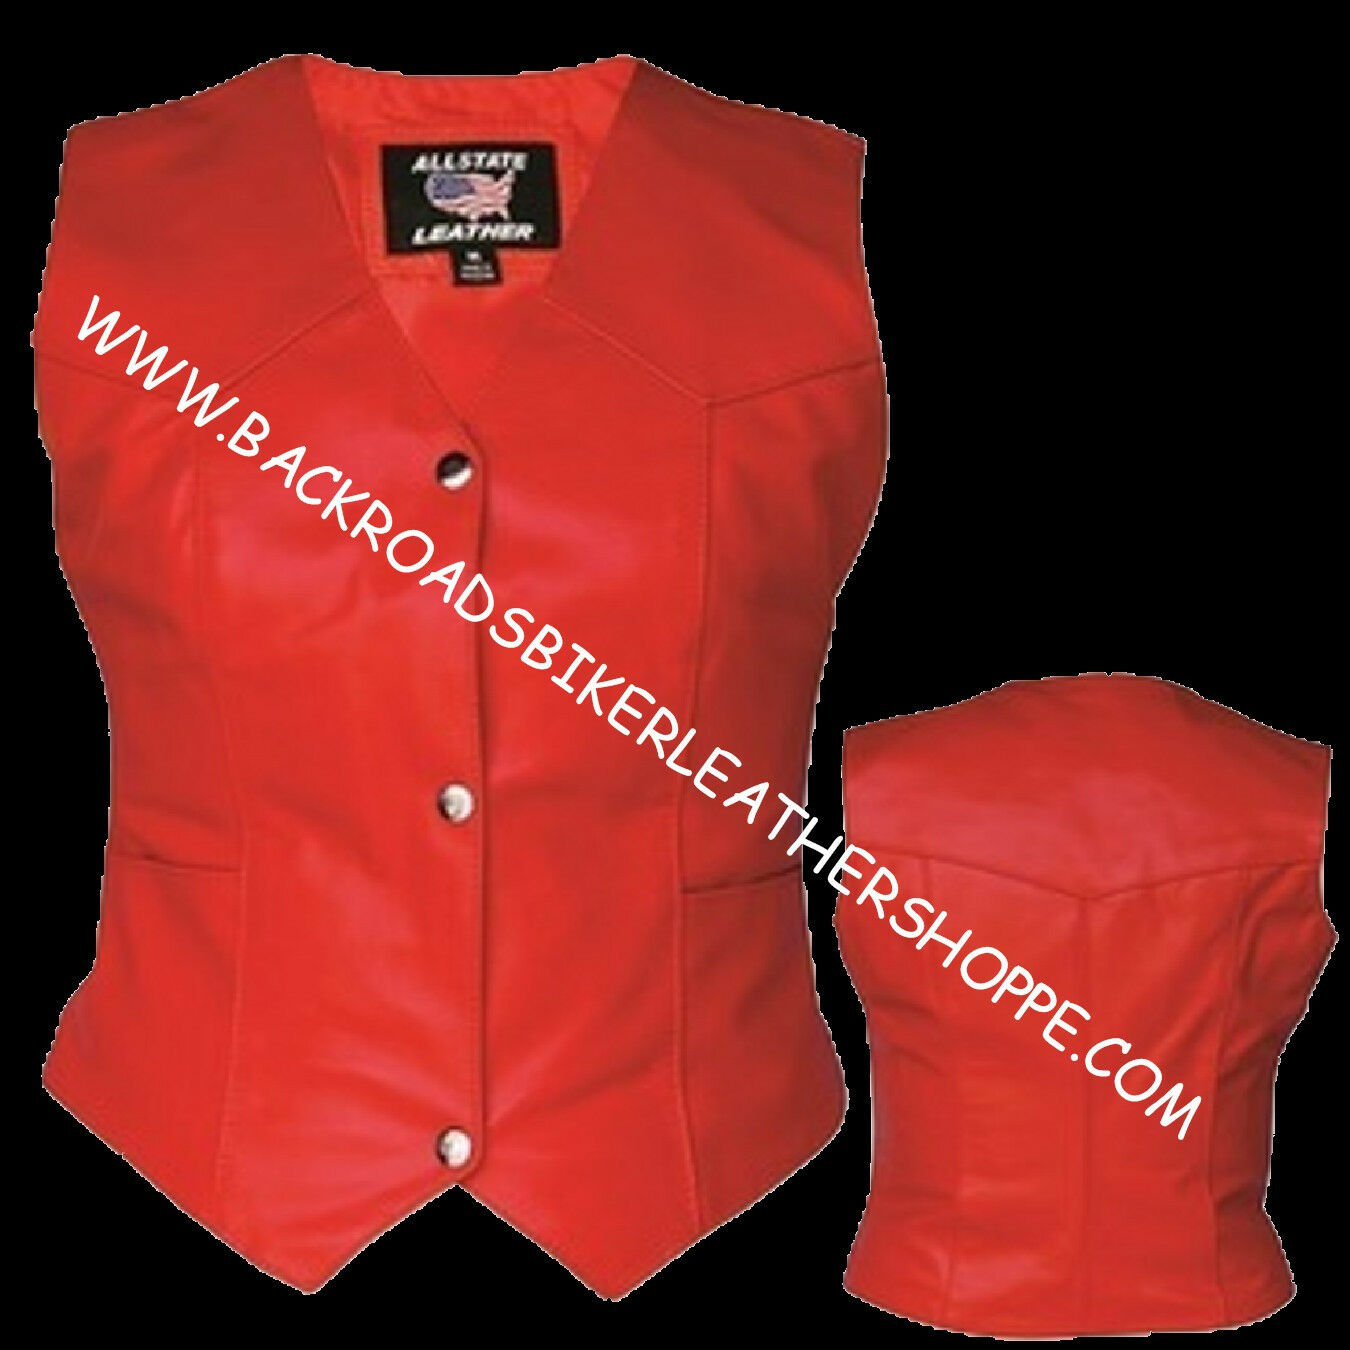 Ladies Women's Red Leather Vest Motorcycle Biker - Sizes XS to 5X NWT